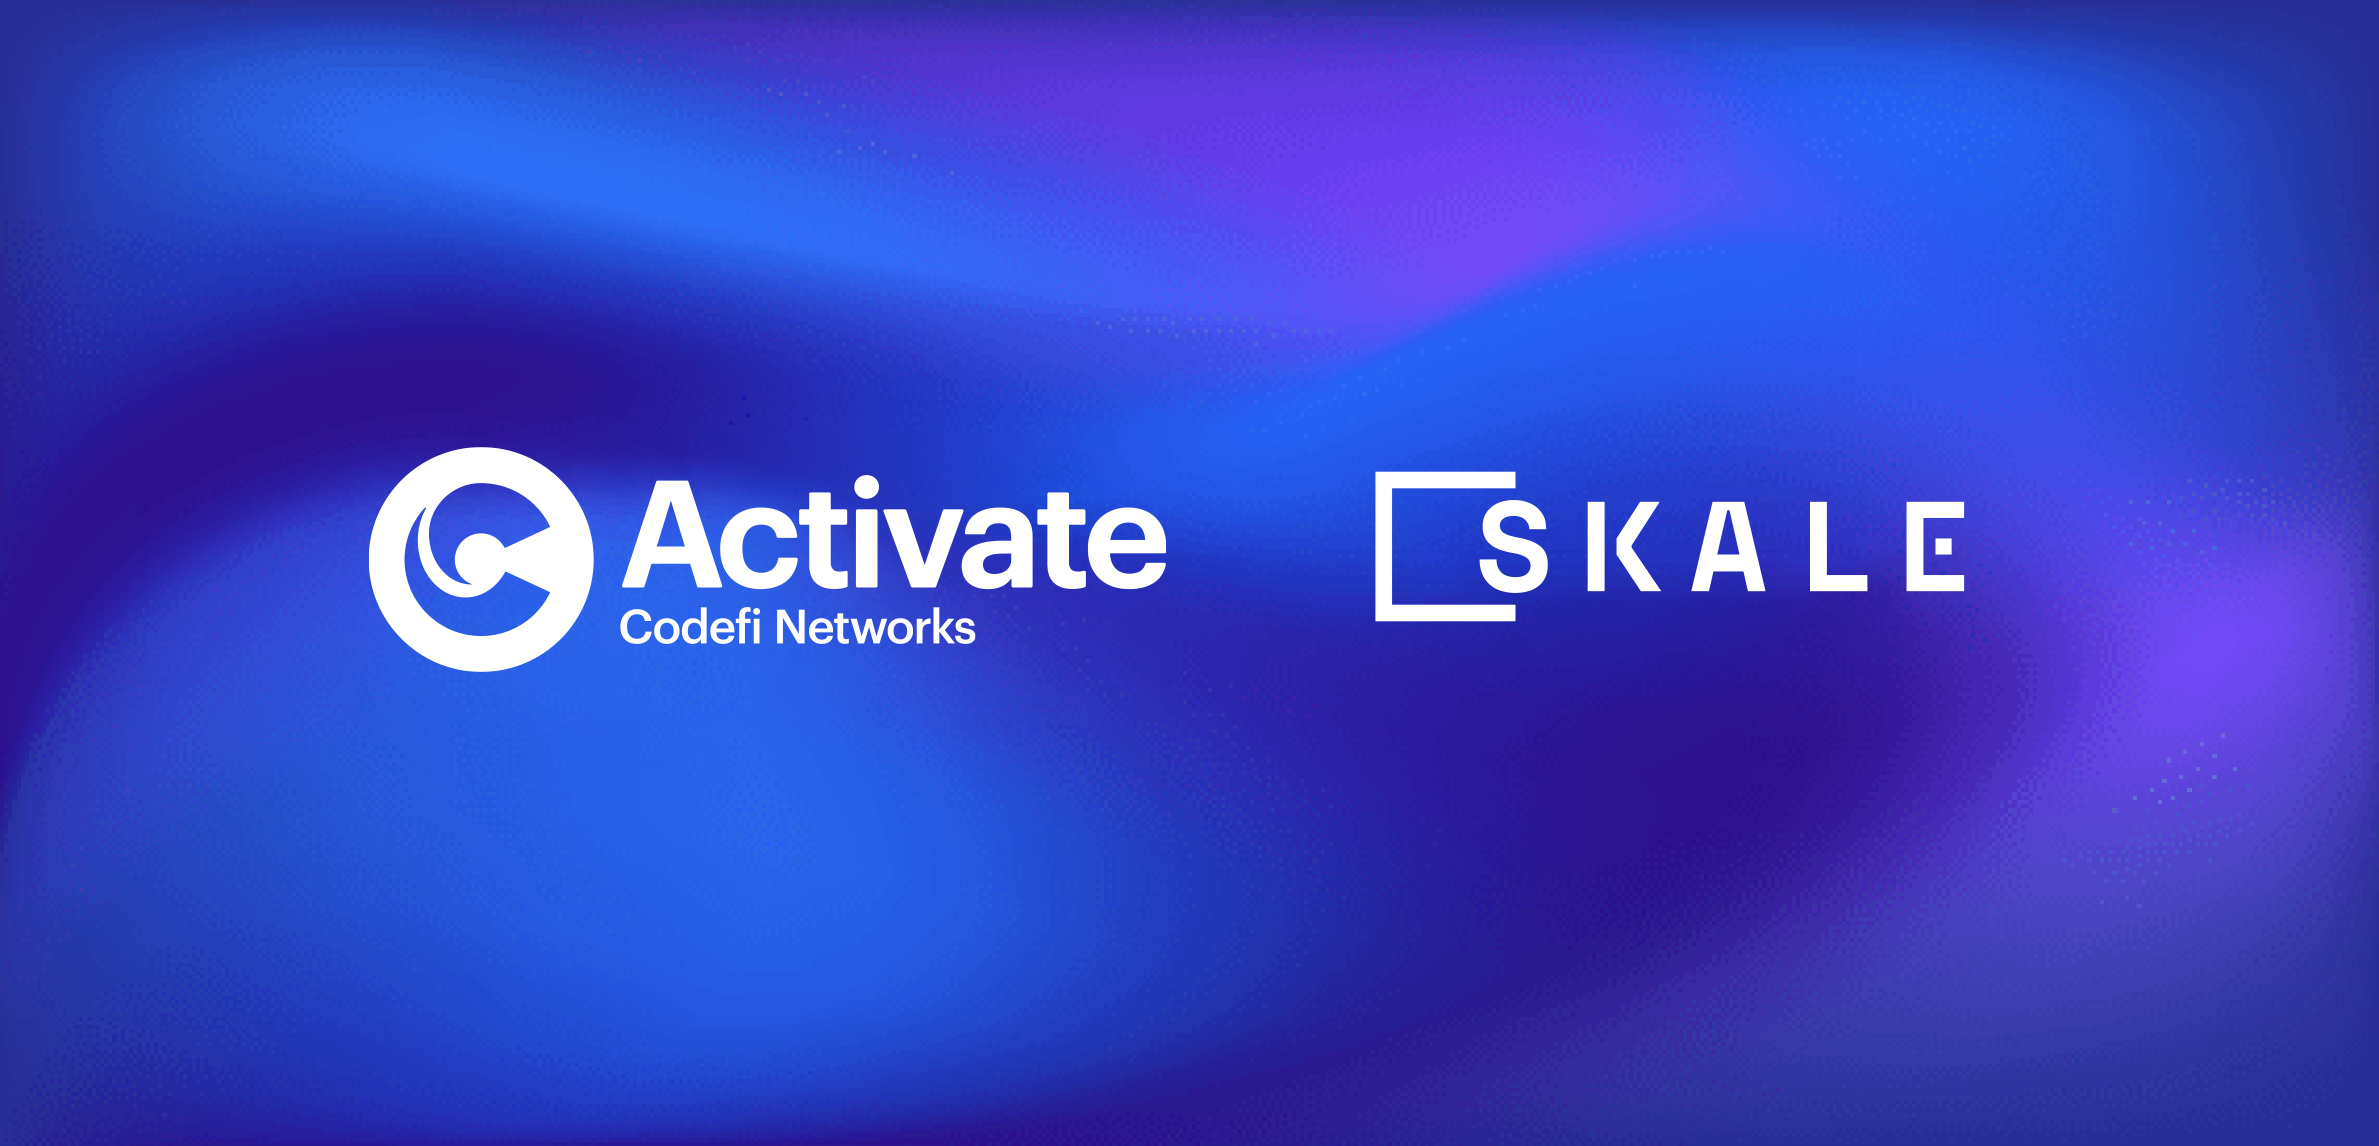 Activate_Skale_InlineImage-1.png